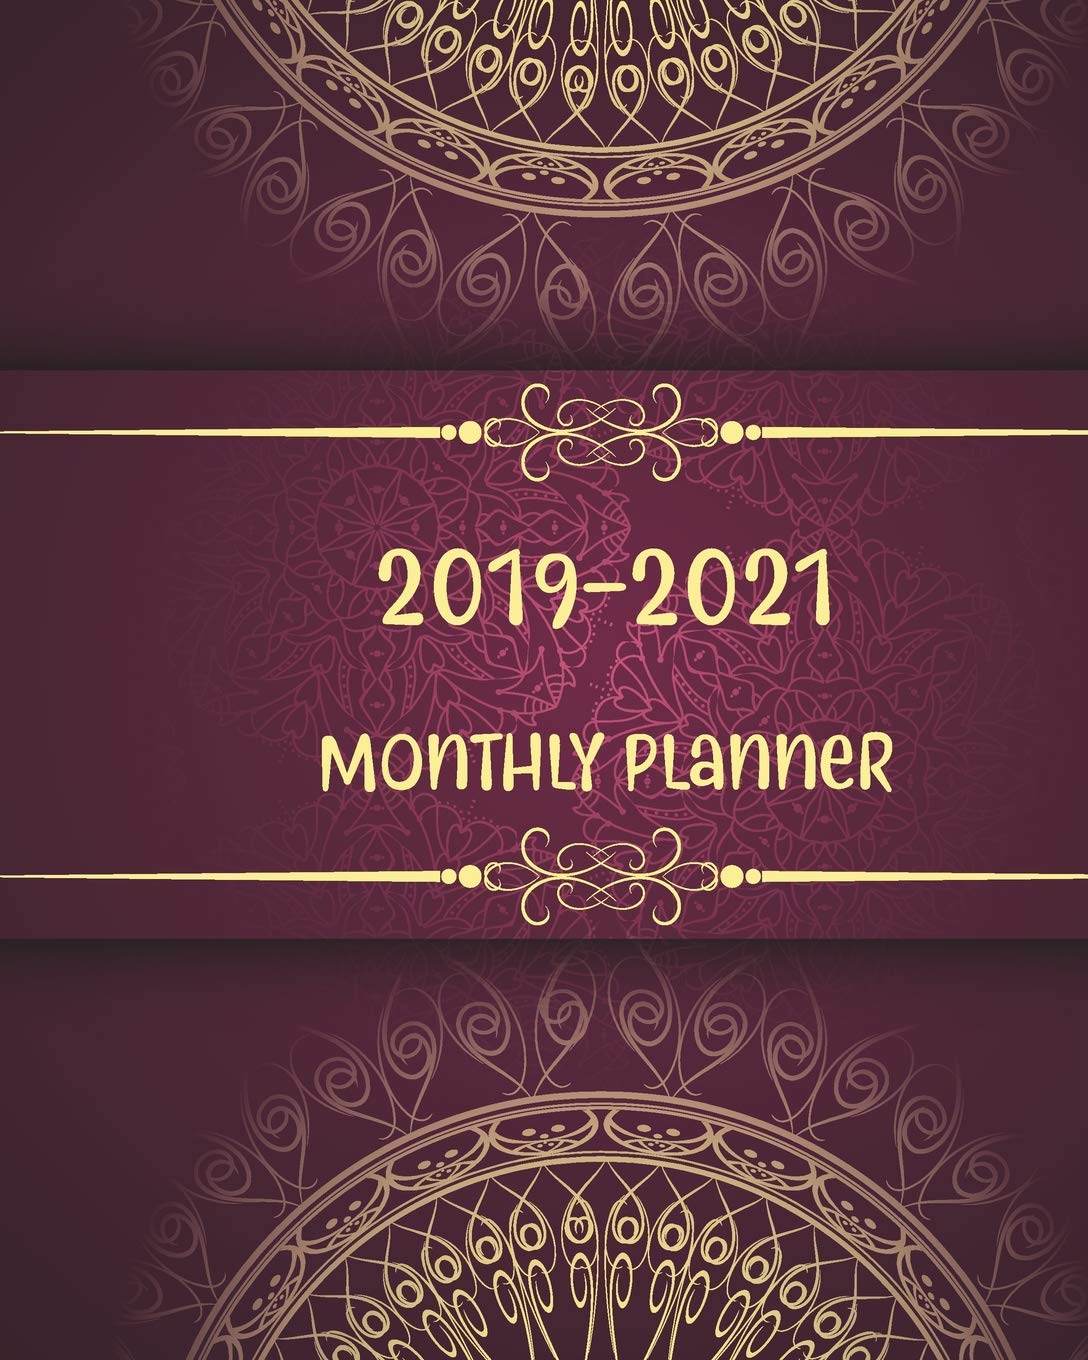 2019-2021 Monthly Planner: Beautiful Mandala Cover, Daily ...